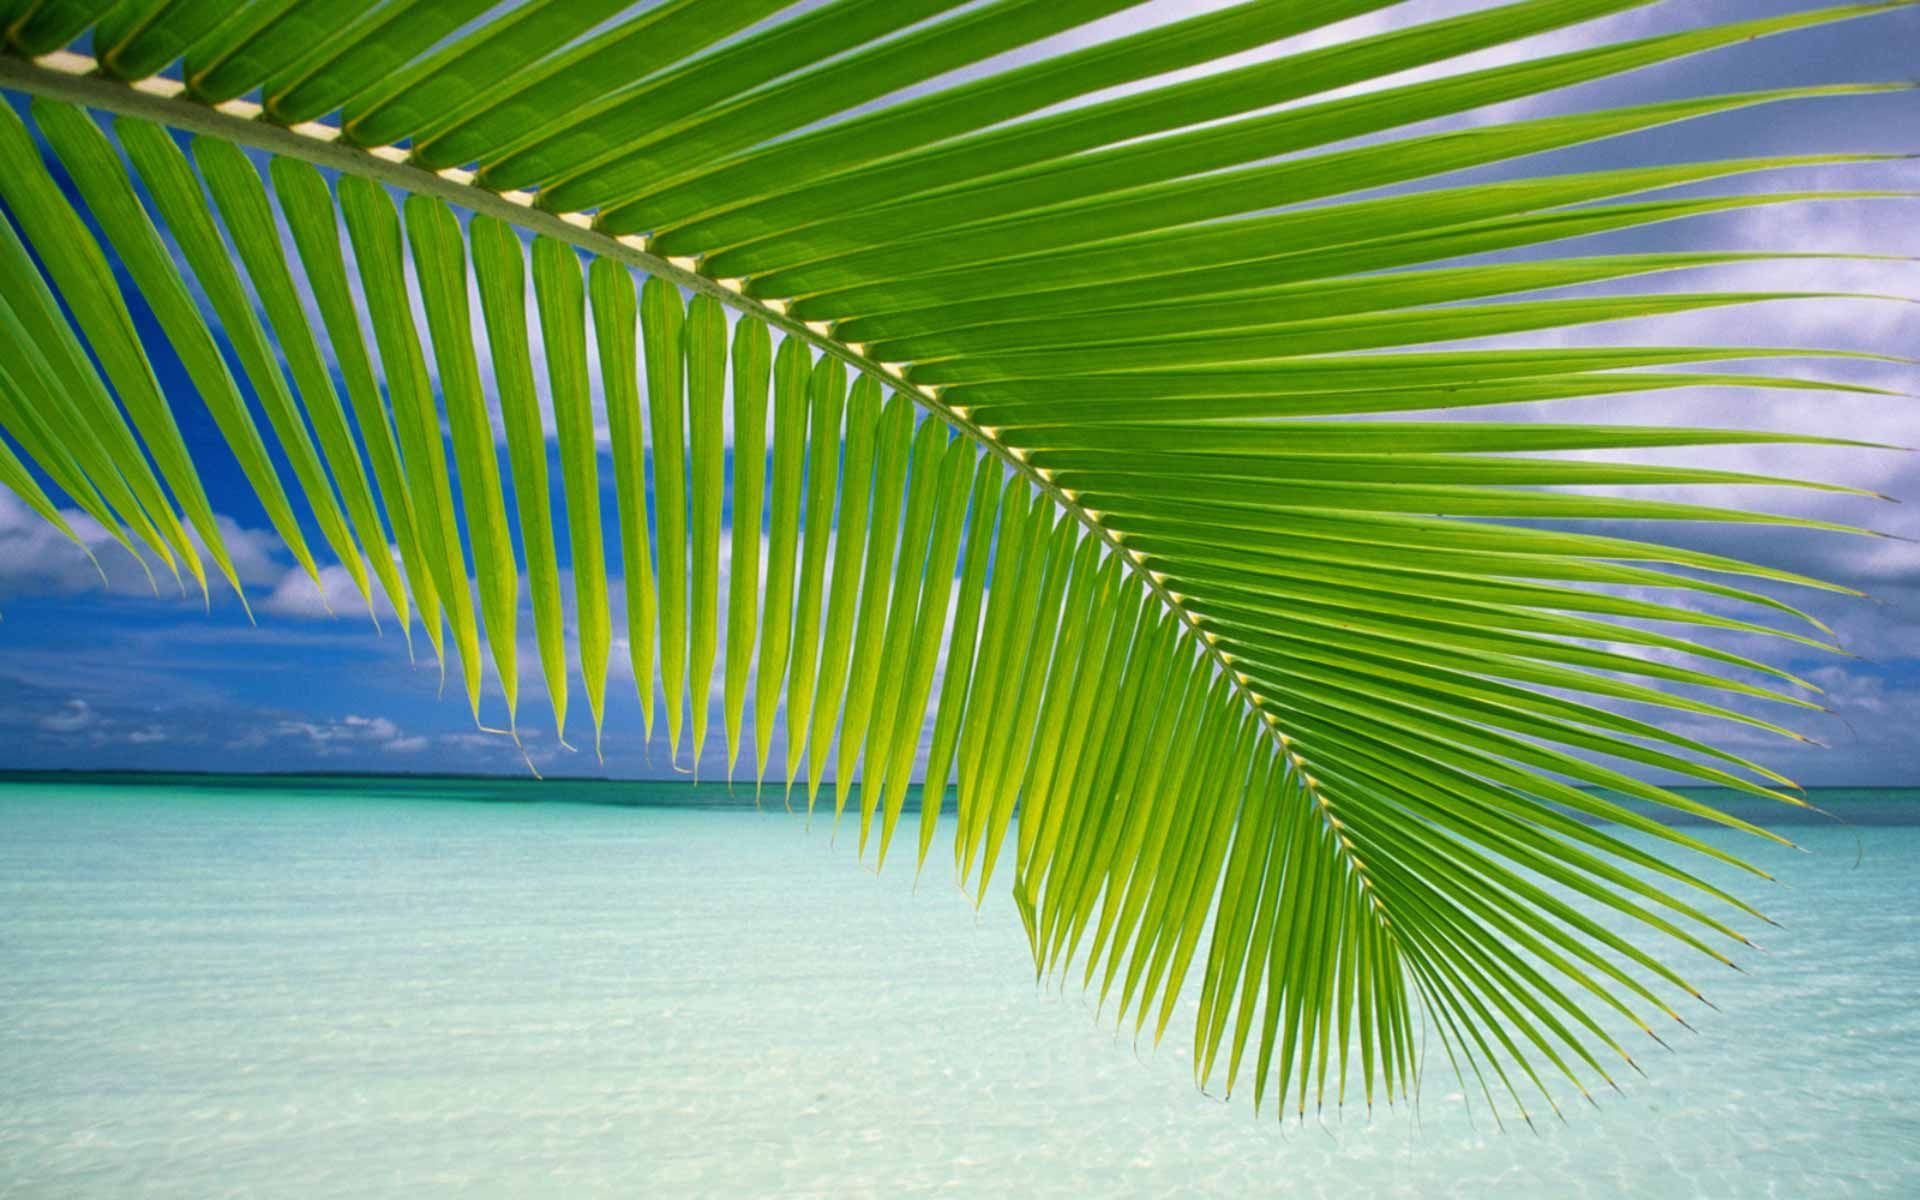 Wallpapers Background Cool Laptop Dell Island Beach Beach Wallpaper Nature Wallpaper Palm Leaf Wallpaper